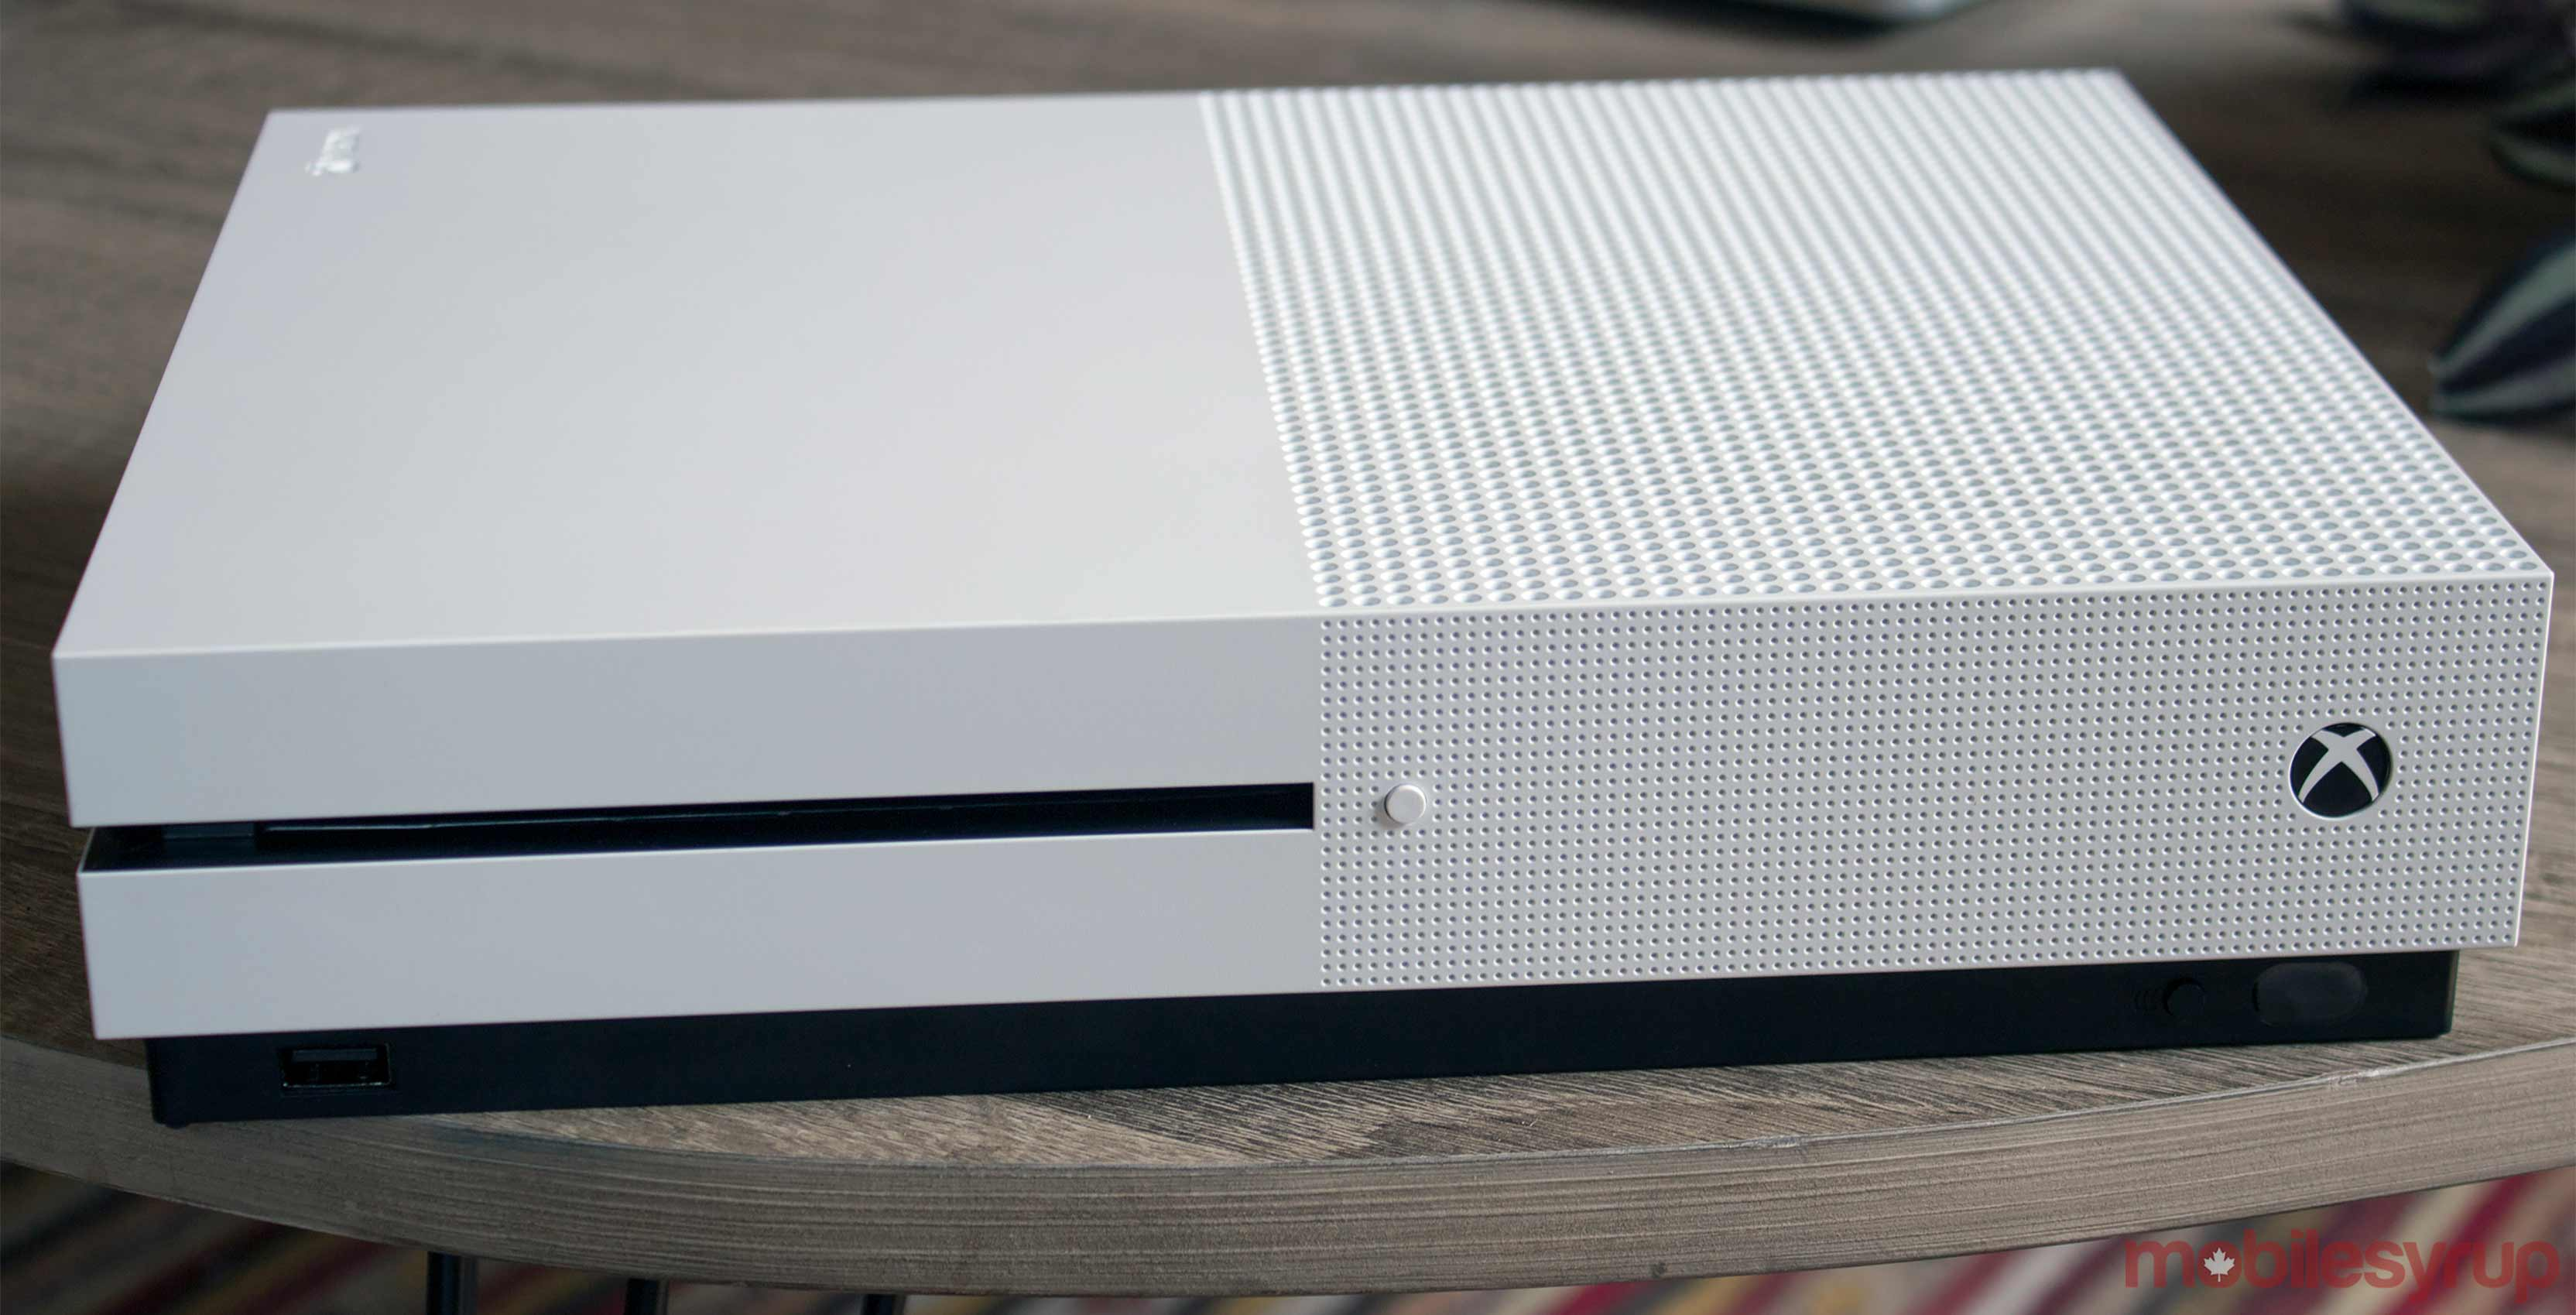 Get An Xbox One S 500GB Bundle With Kinect Halo 5 Forza 6 And More For 329